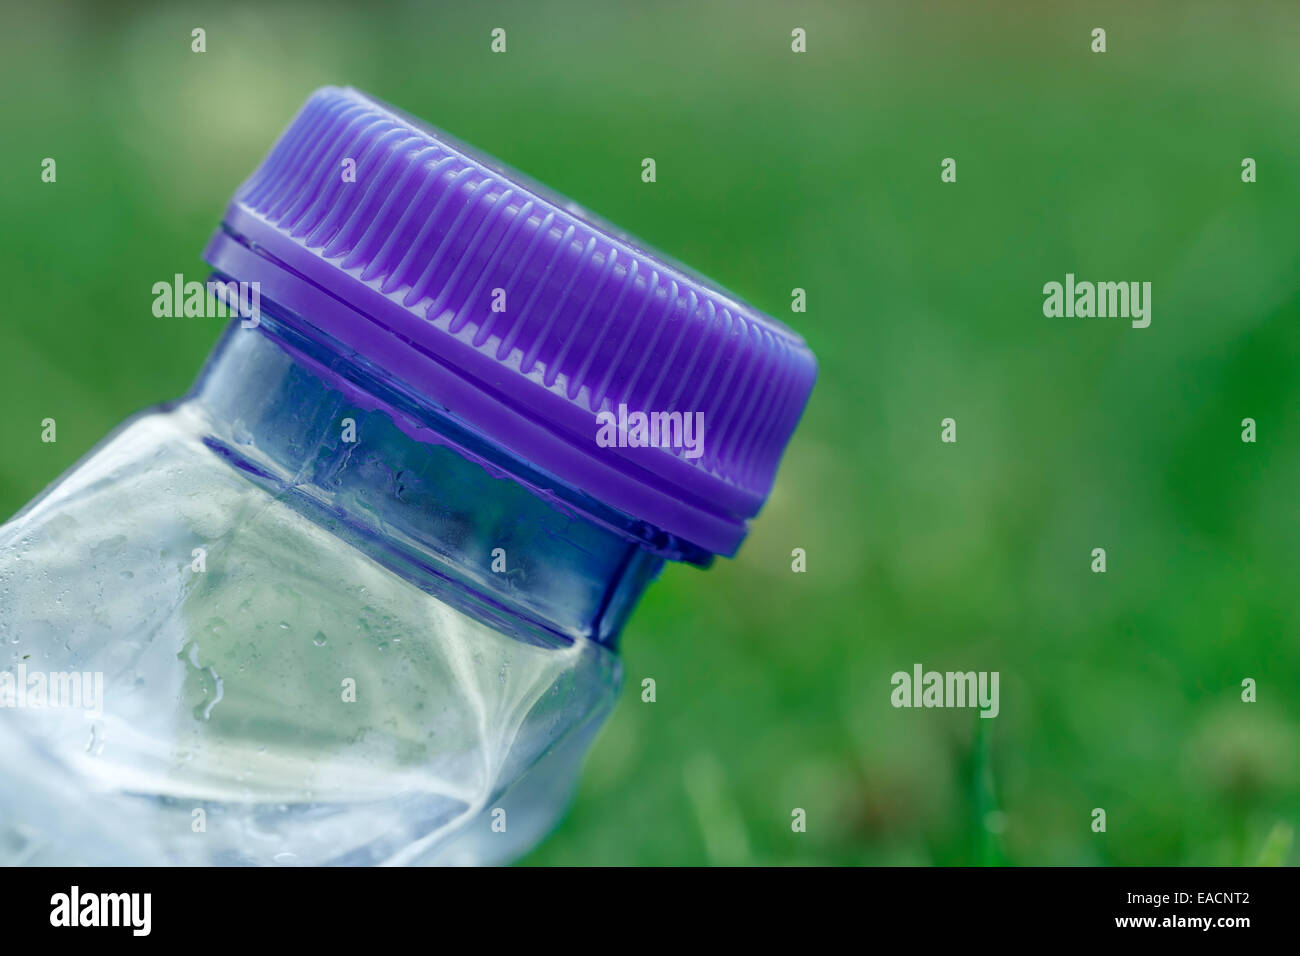 bottle of water compressed, plastic bottle cap, macro shot - Stock Image